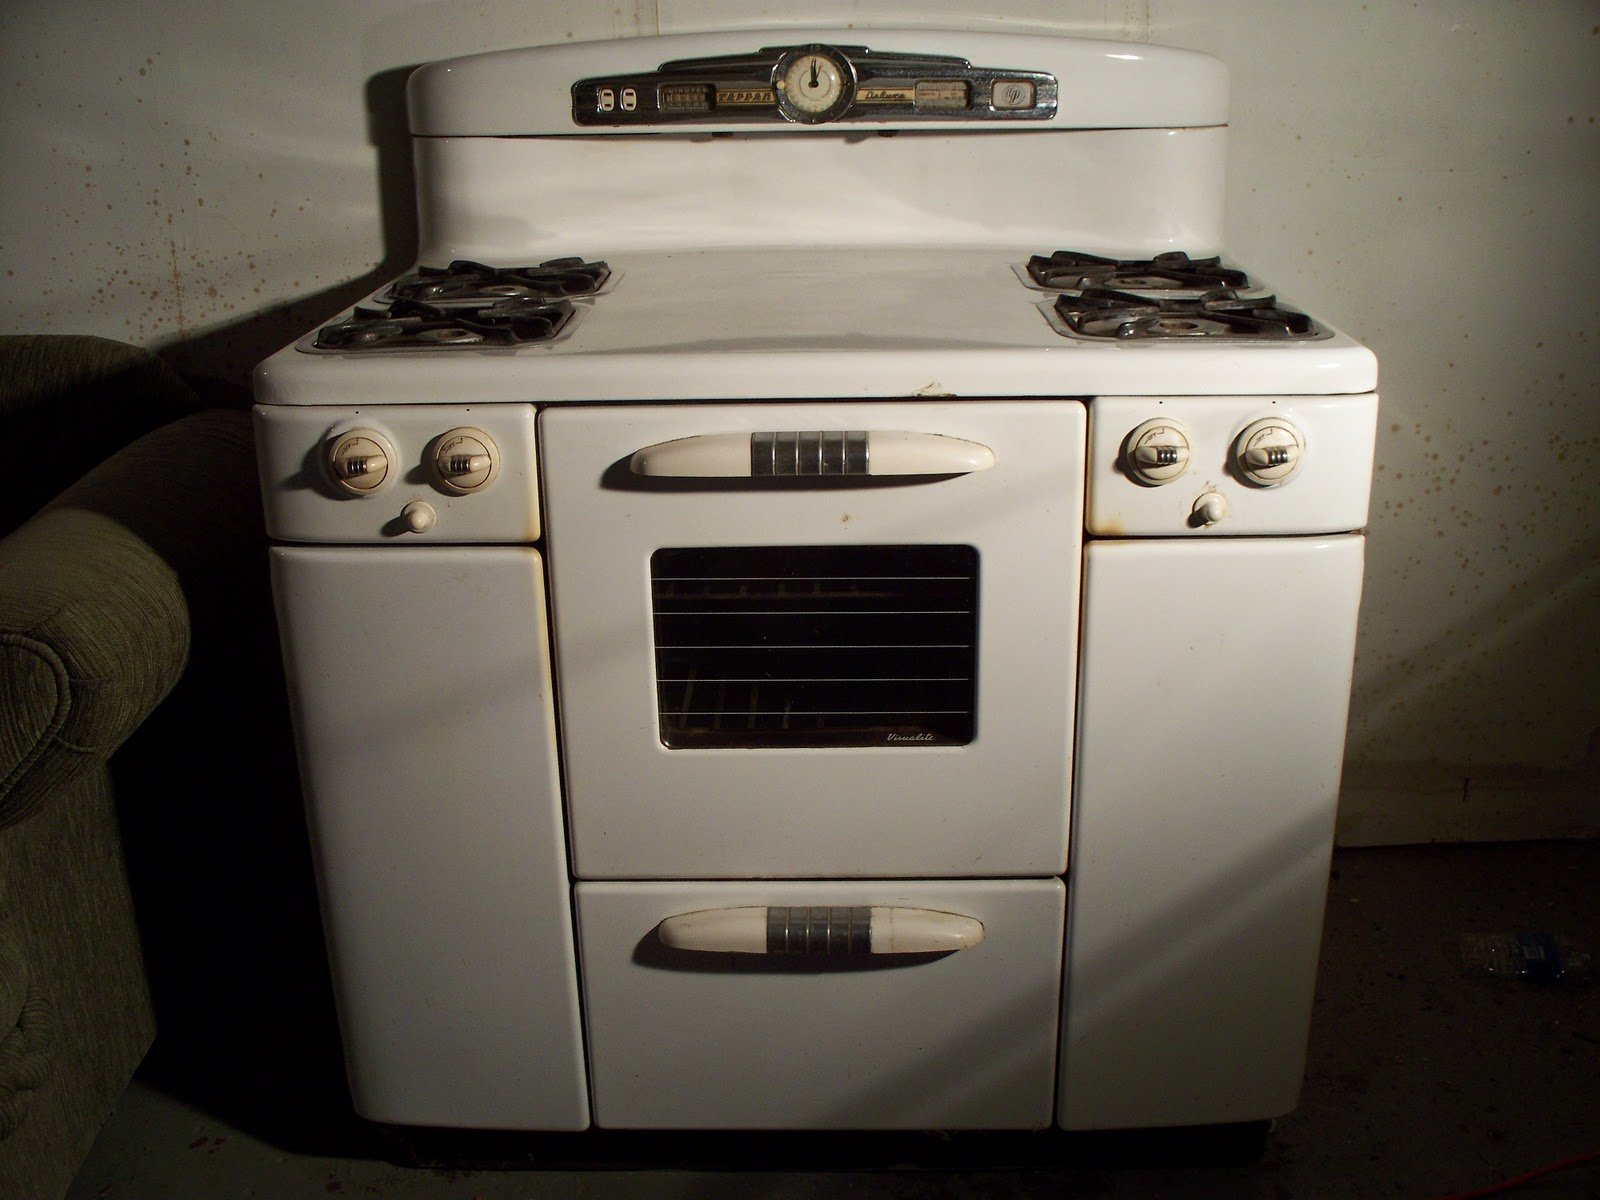 Kitchenaid Oven Temperature Sensor Location further Watch together with T13192996 Need wiring diagram belling format additionally Whirlpool Range Surface Element Wiring Diagram as well Whirlpool Double Oven Wiring Diagram Free Download. on tappan gas range wiring diagram